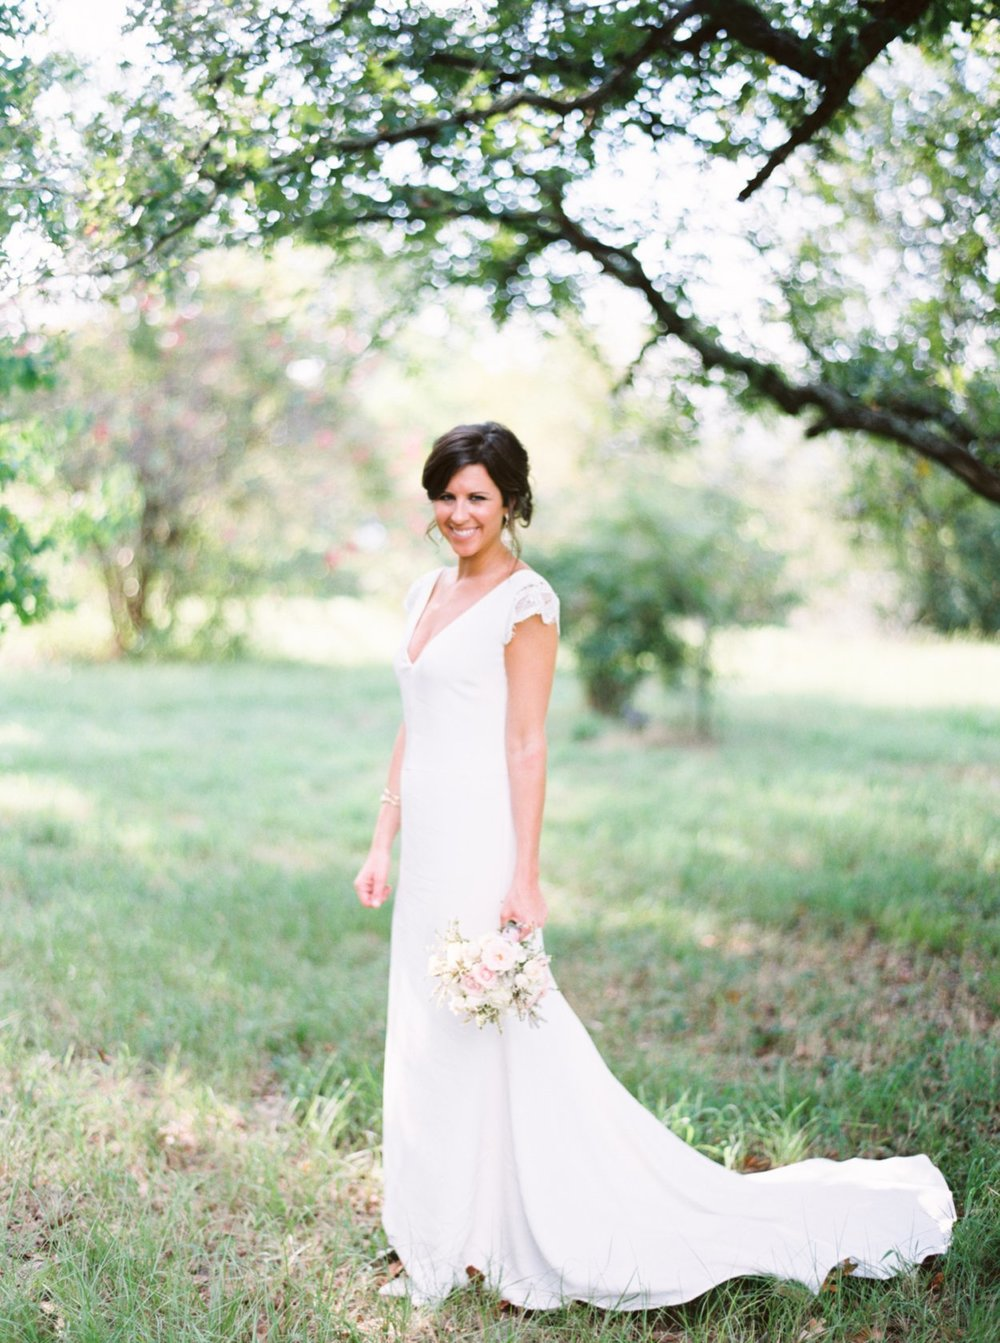 7611a-austinweddingphotographeraustinweddingphotographer.jpg